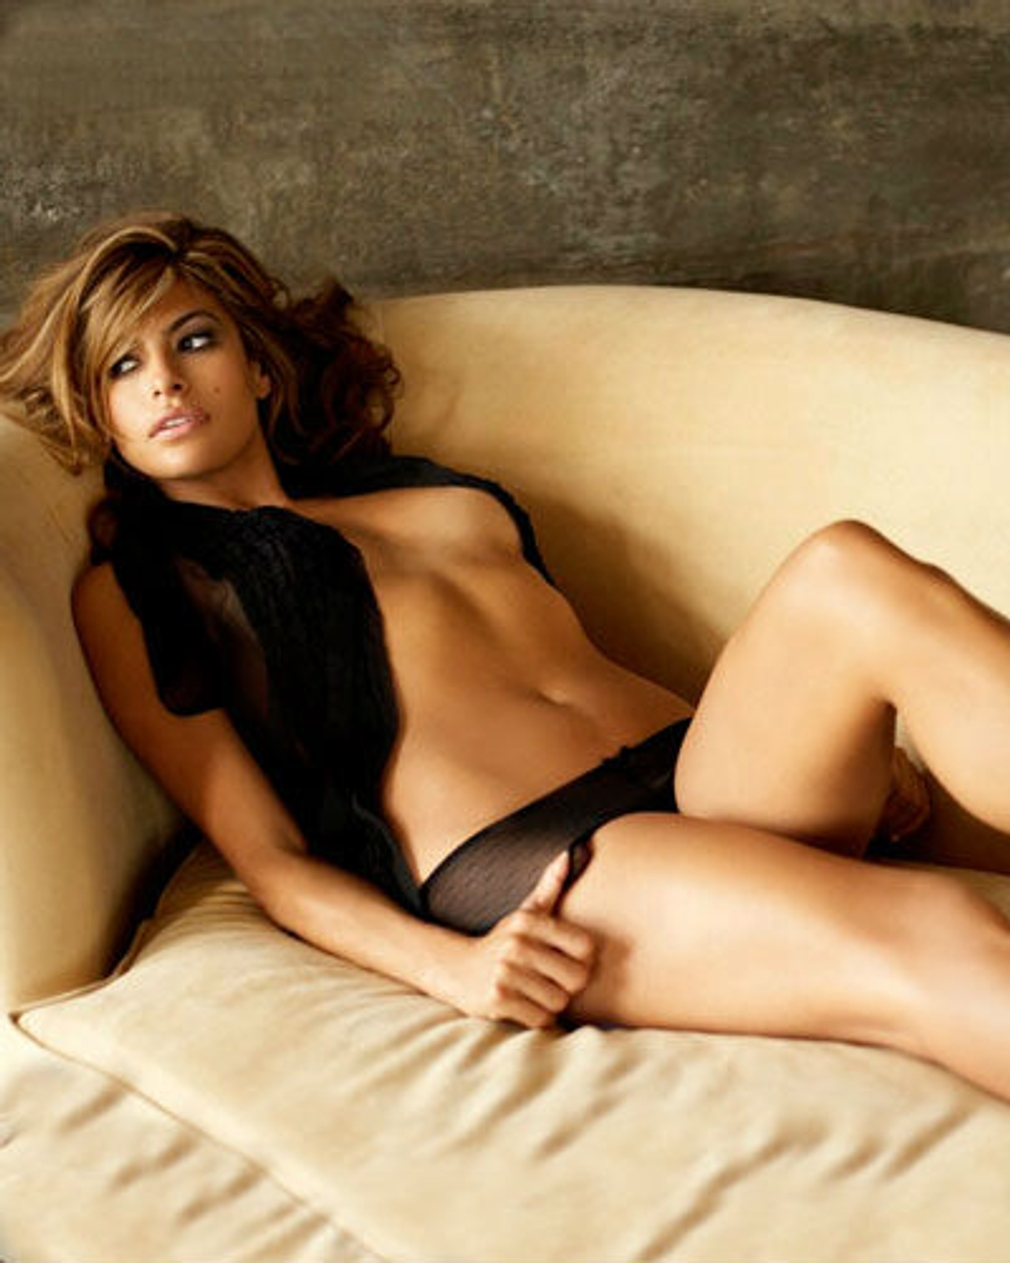 Nude photos of eva mendes go missing